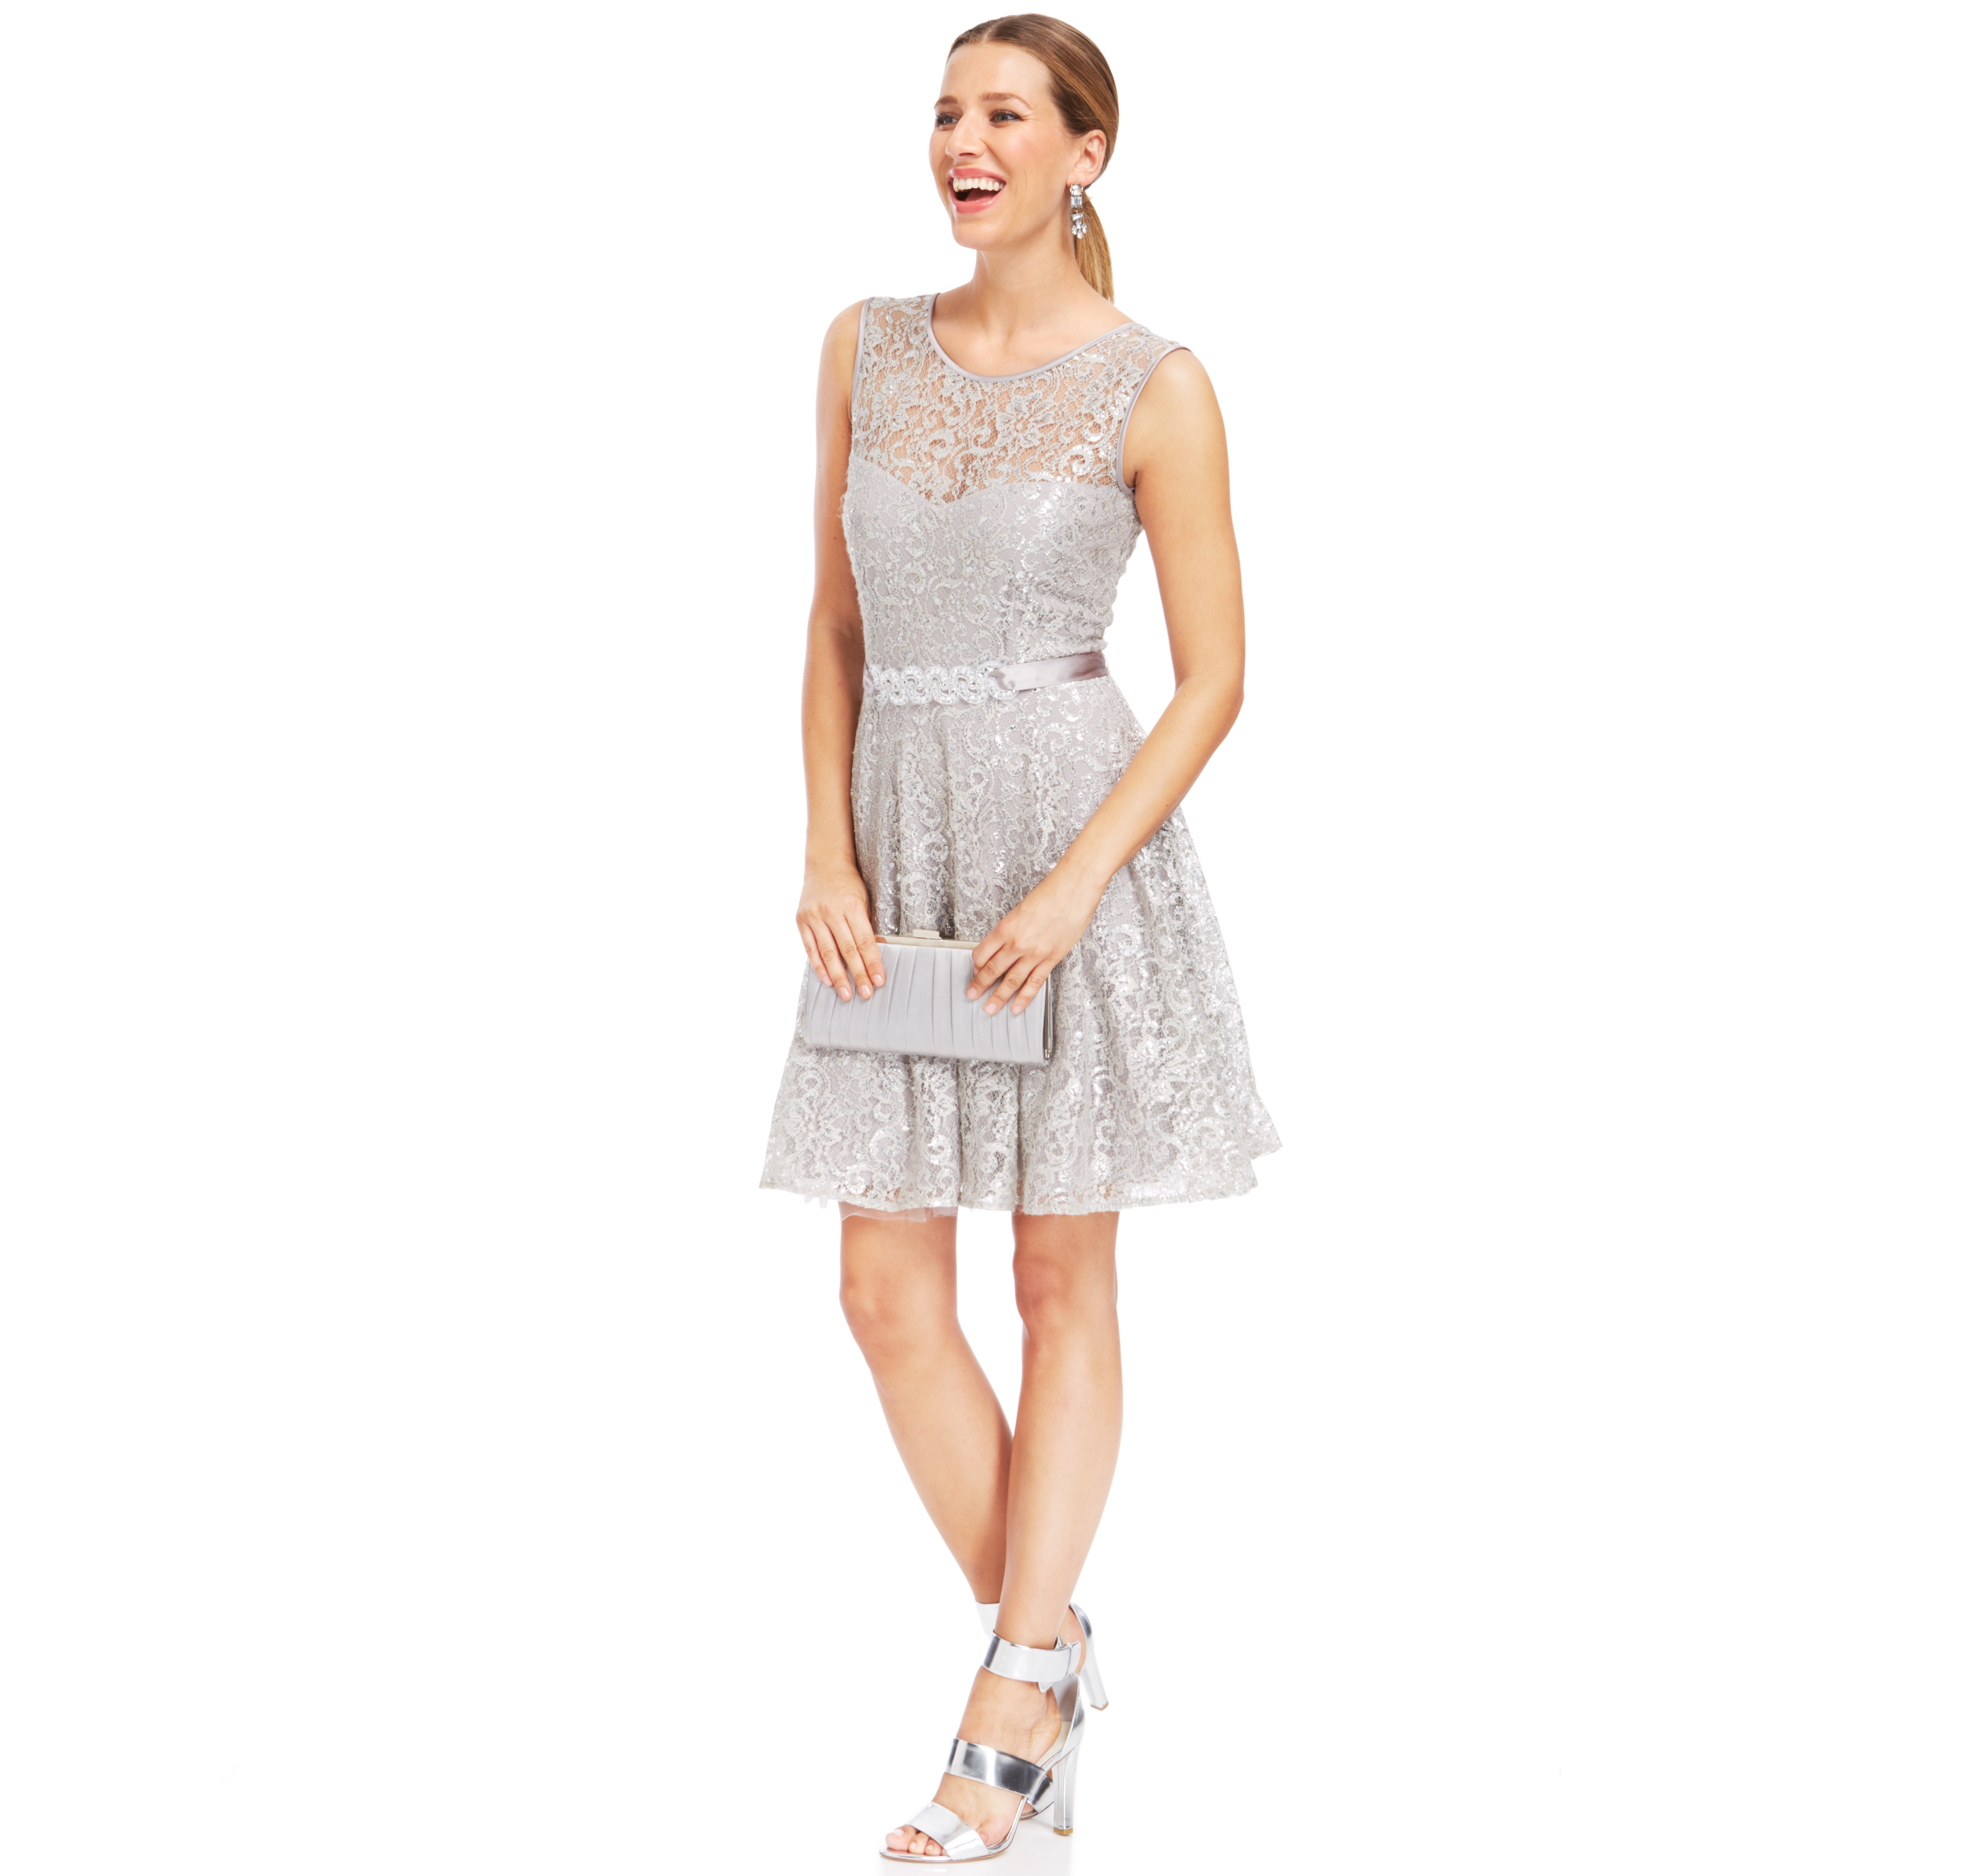 Betsy u adam petite illusion foiled lace belted dress products